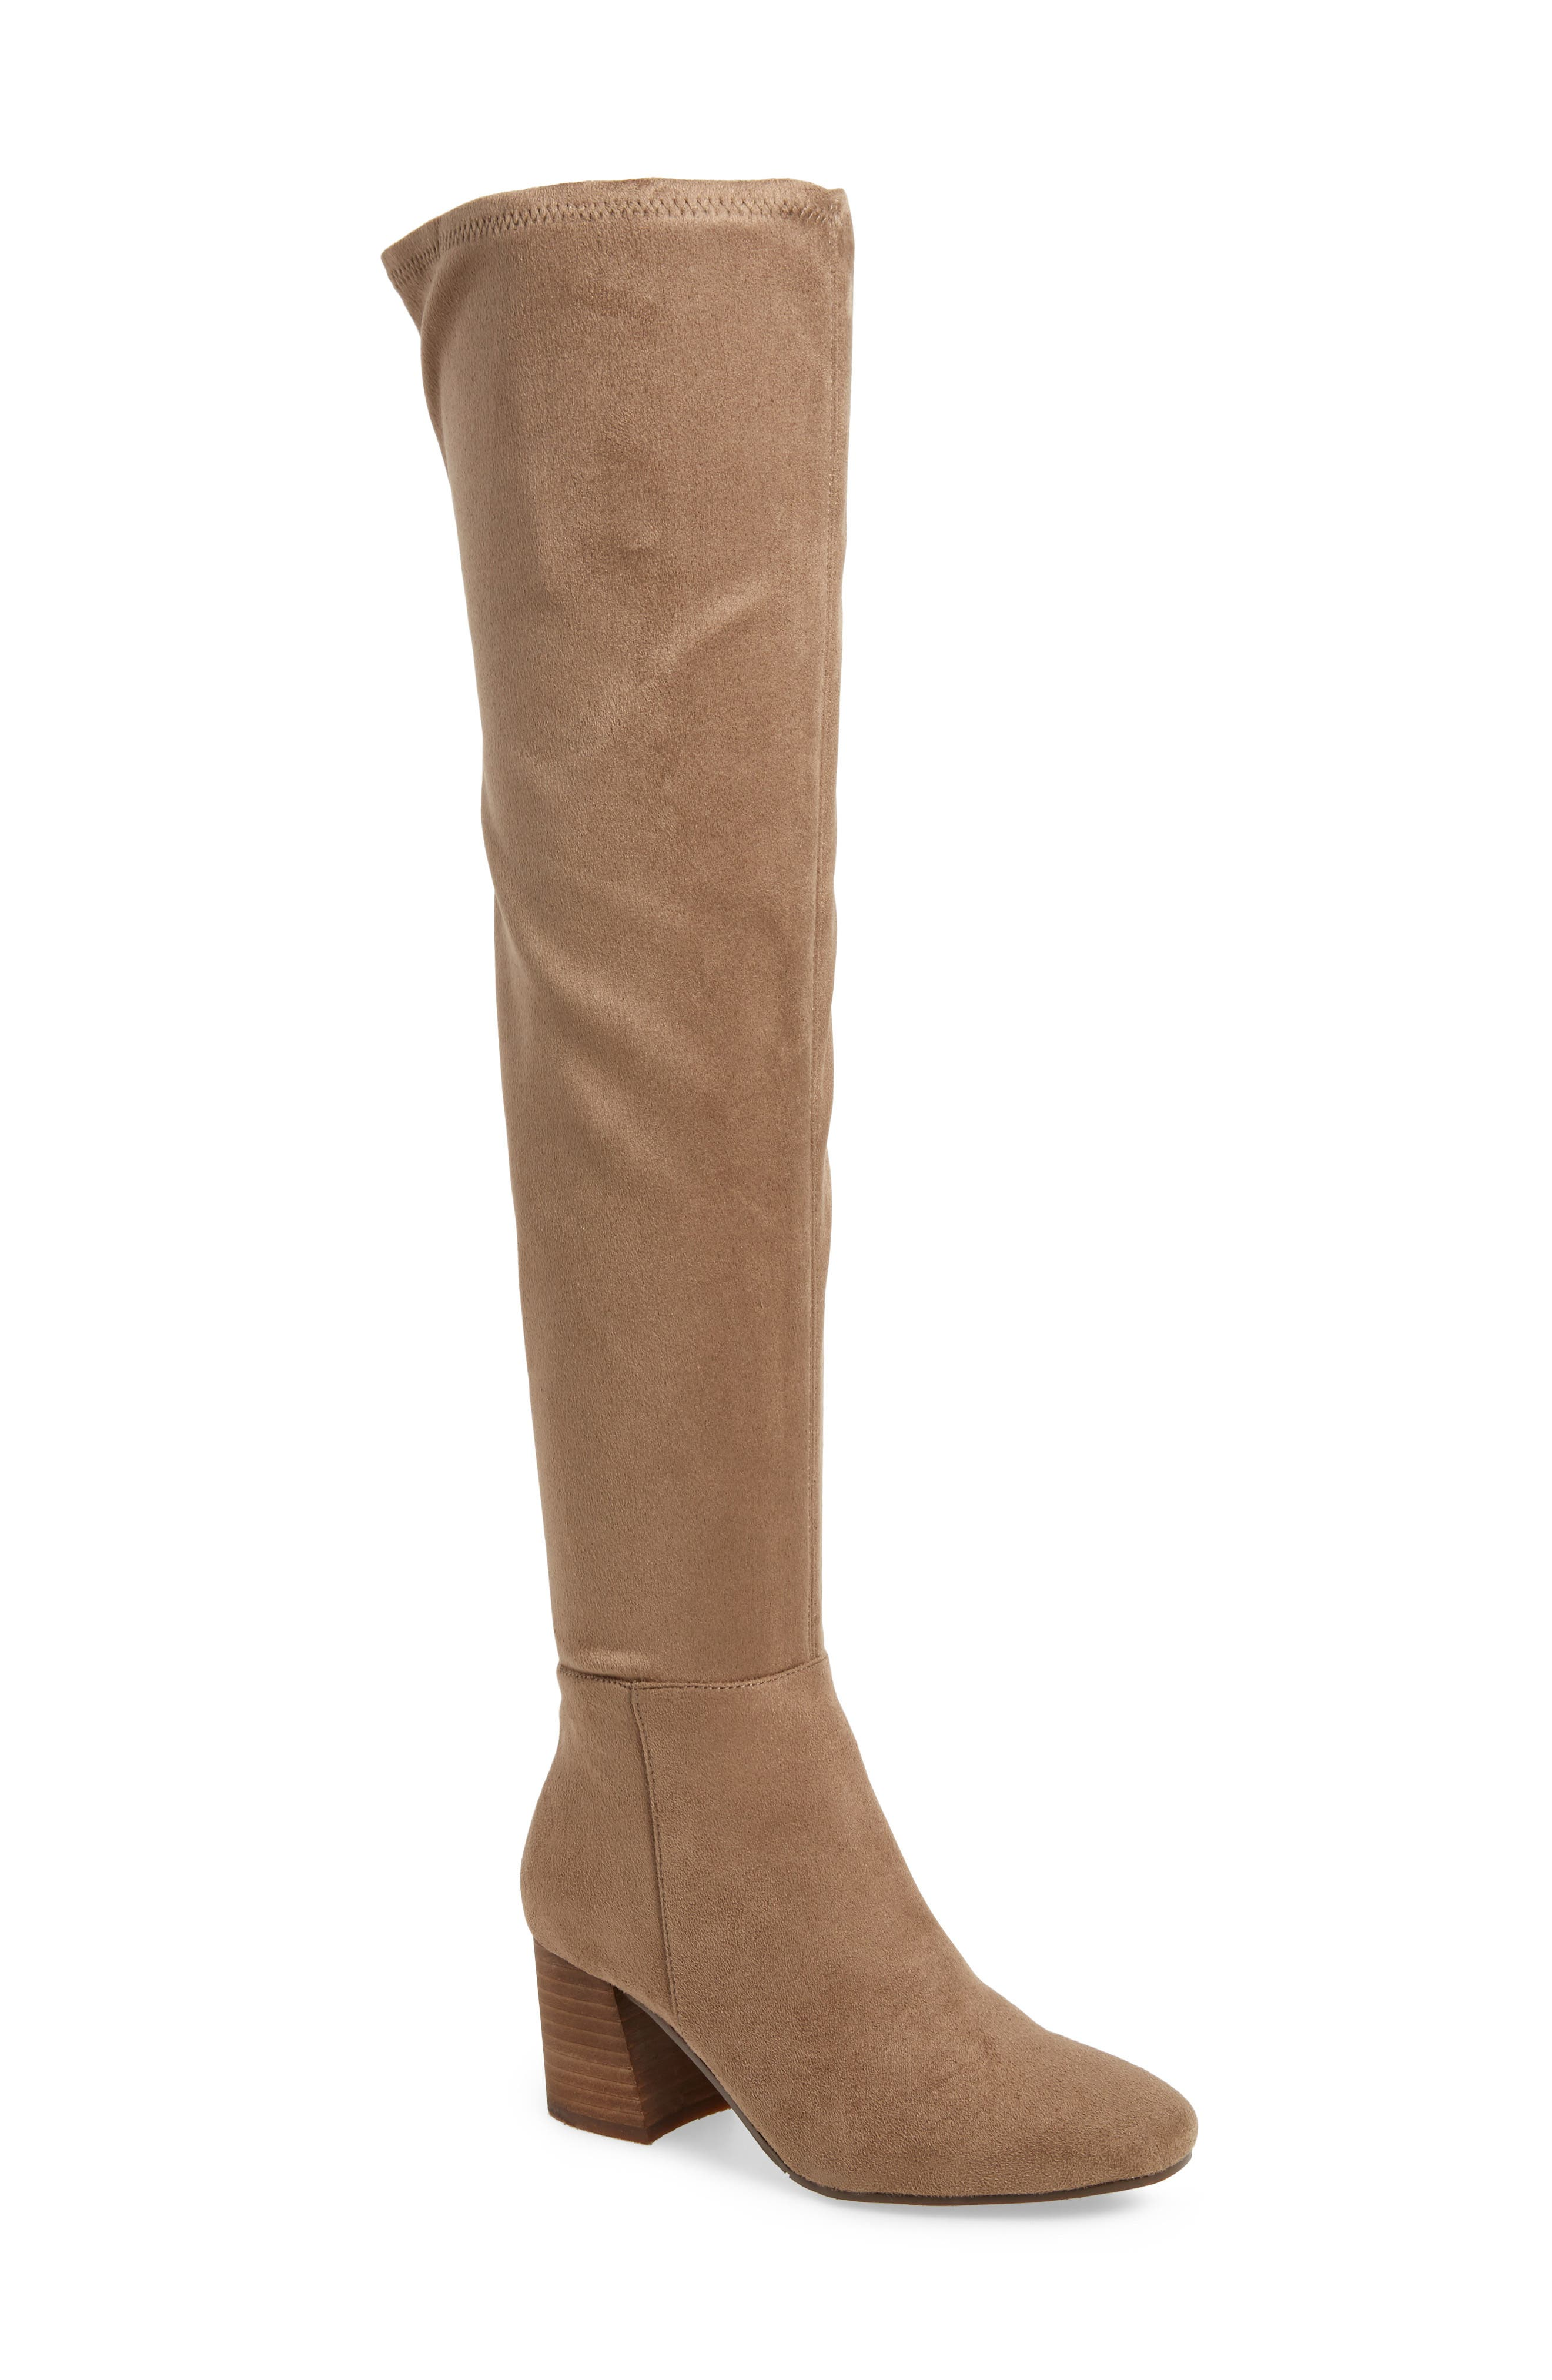 Kantha Over the Knee Boot,                         Main,                         color, Foxy